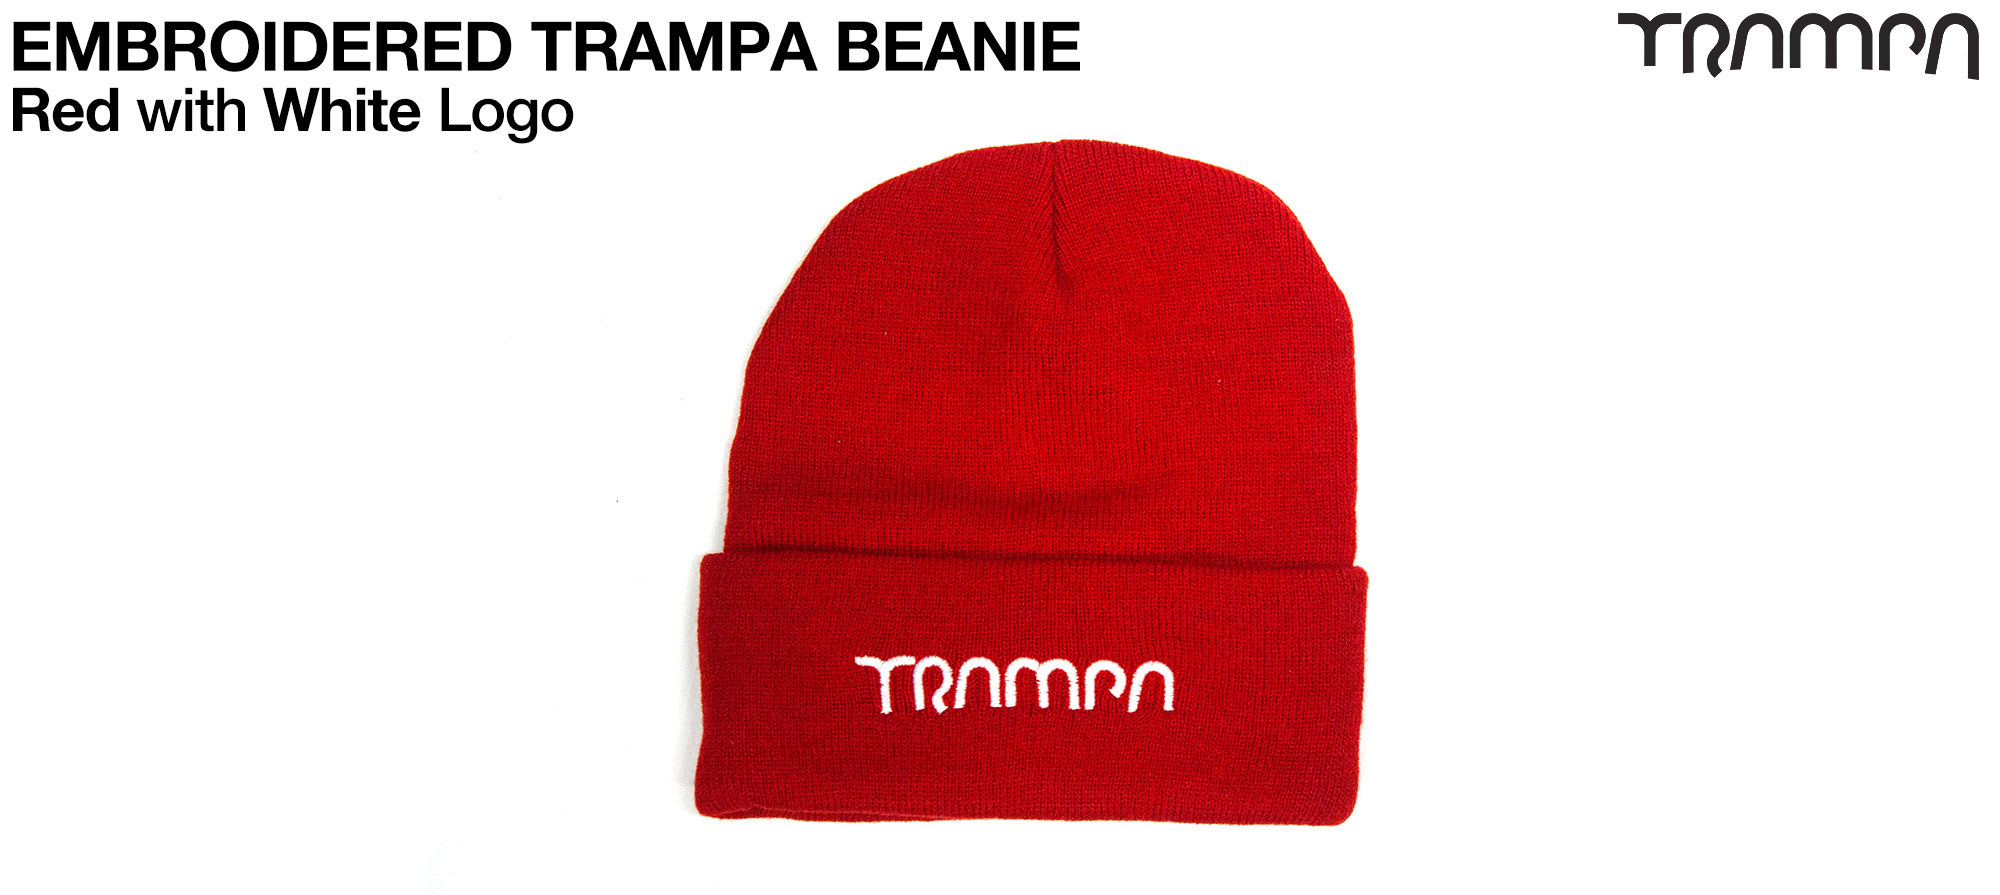 RED Woolie hat with White TRAMPA logo  (out of stock)